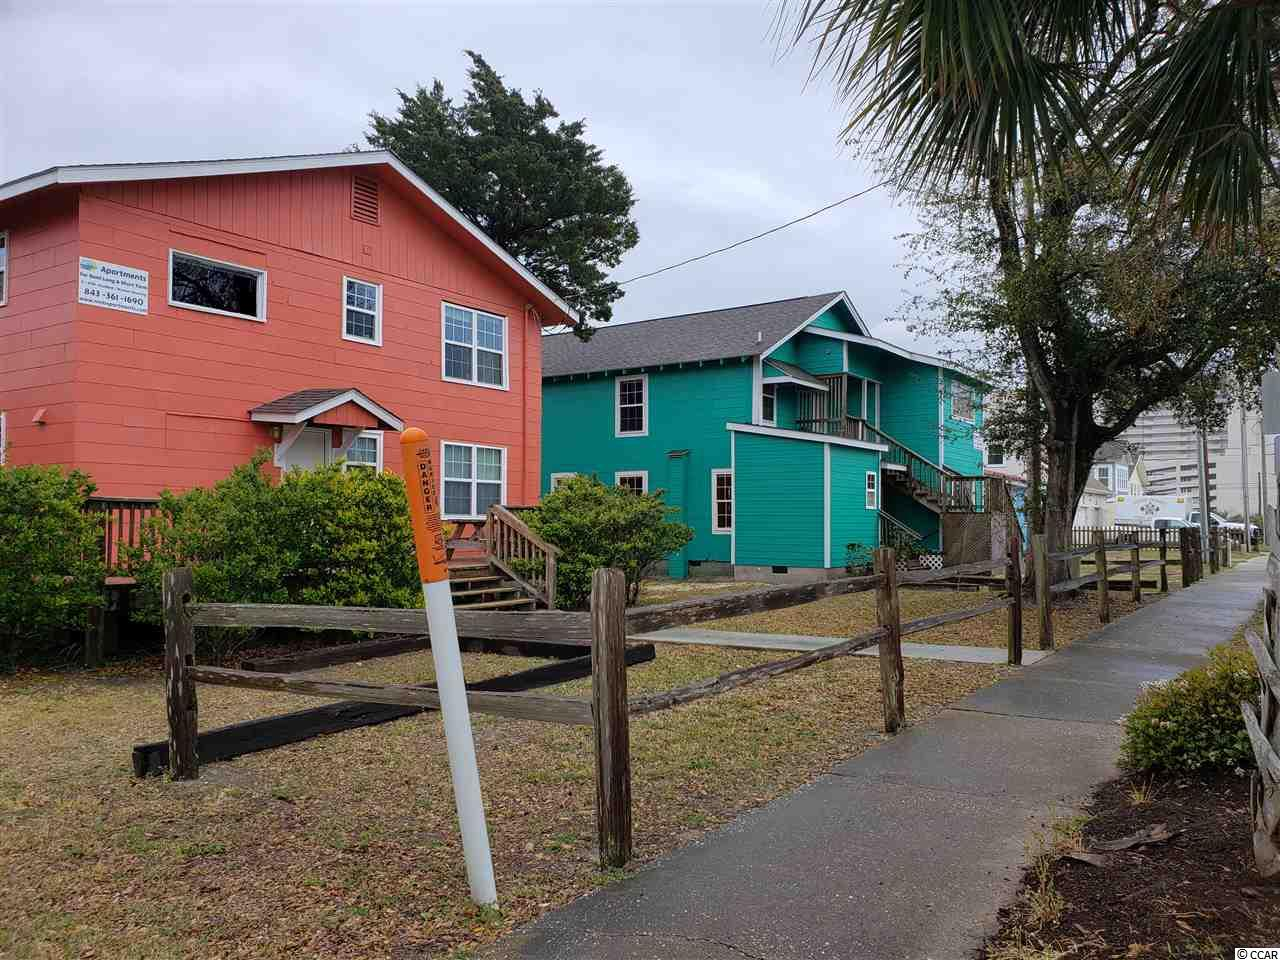 A four bedroom house built on a commercial corner lot east of 17 business a short walk to the beach, surrounded by beautiful properties, shopping and dining.  Located a short drive from Barefoot Landing.  ENTRY TO THE INTERIOR IS NOT AUTHORIZED!